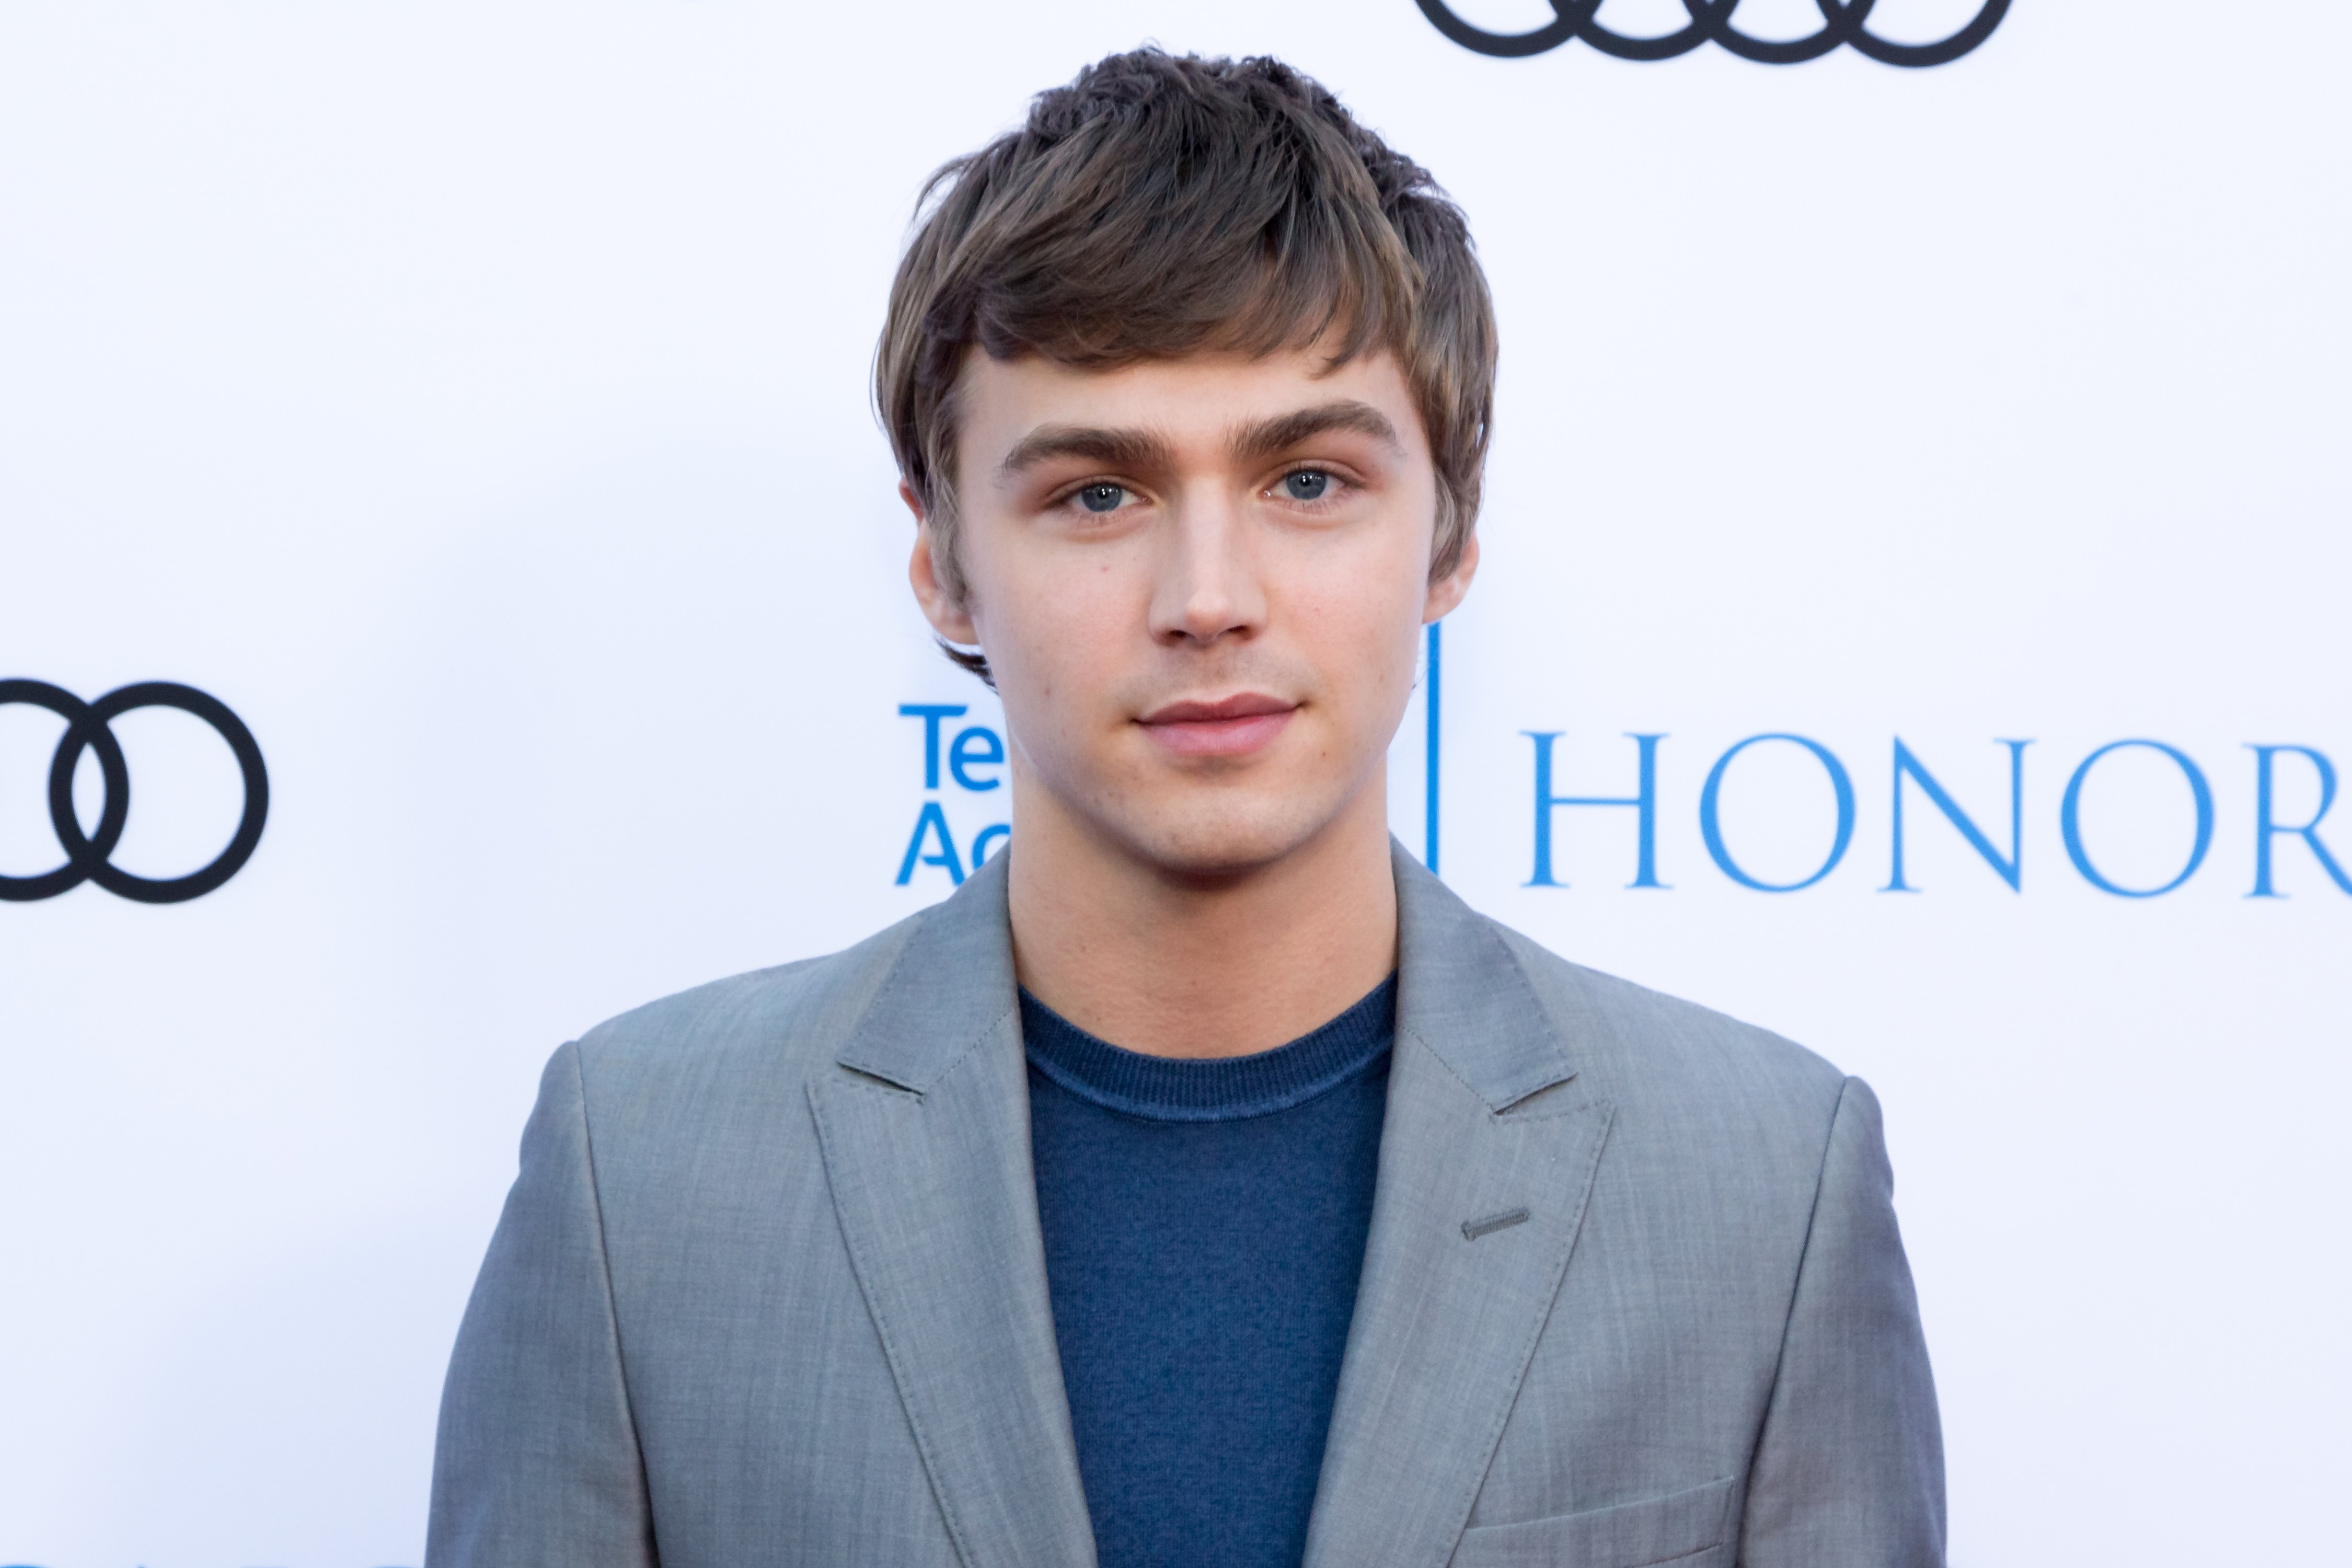 Image Source: Getty Images| Miles Heizer having an interview at the Television Academy Honors